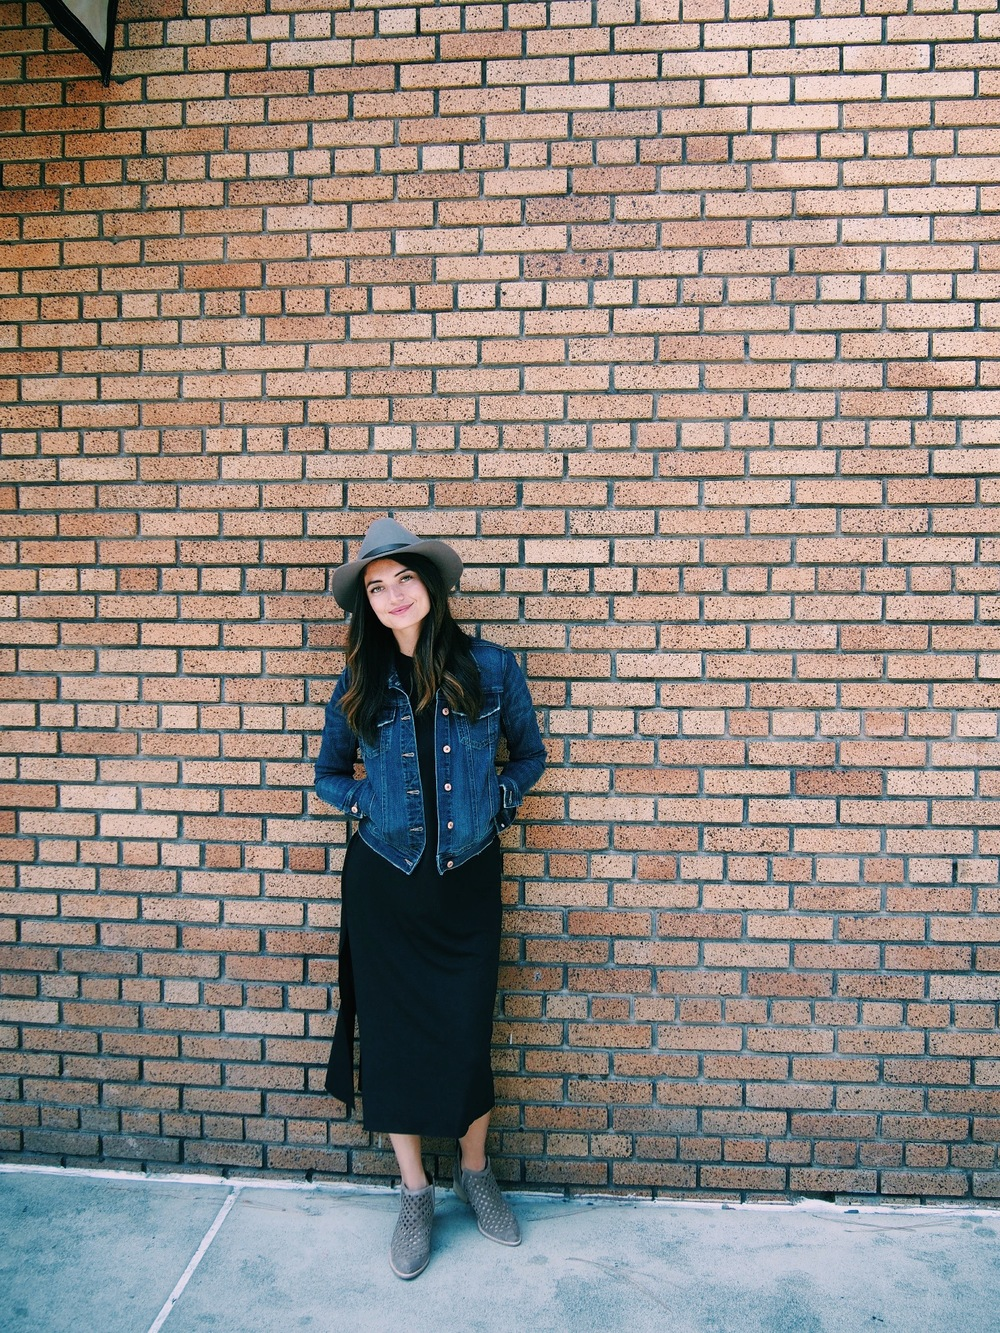 Hat: Urban Outfitters. Dress: Zara, old. Denim Jacket: Zara. Shoes: Jeffrey Campbell.